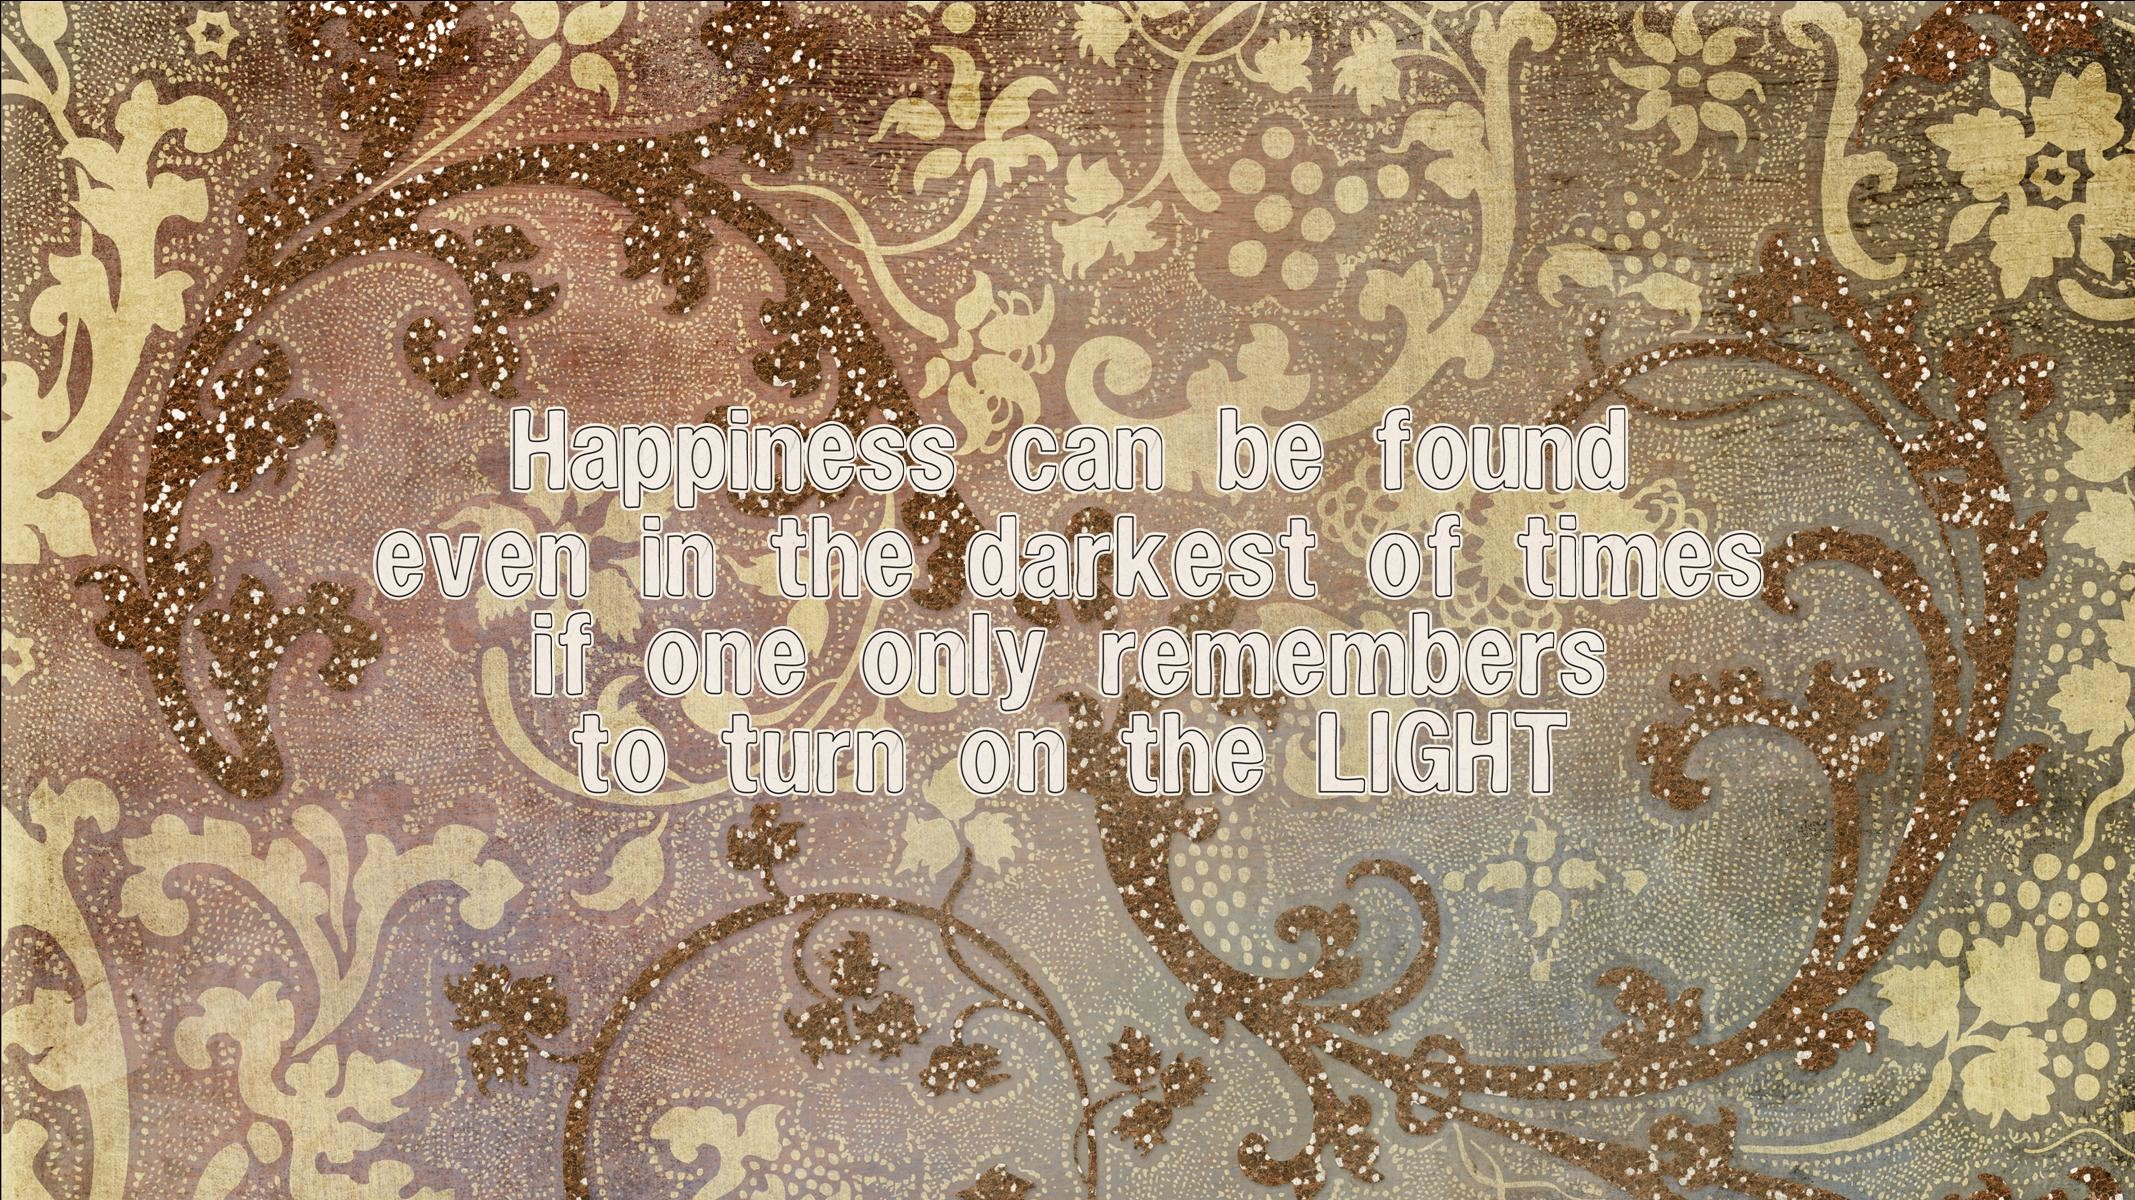 Harry Potter Quotes Wallpapers Images   Data Src Harry - Harry Potter Wallpapers For Desktop - HD Wallpaper